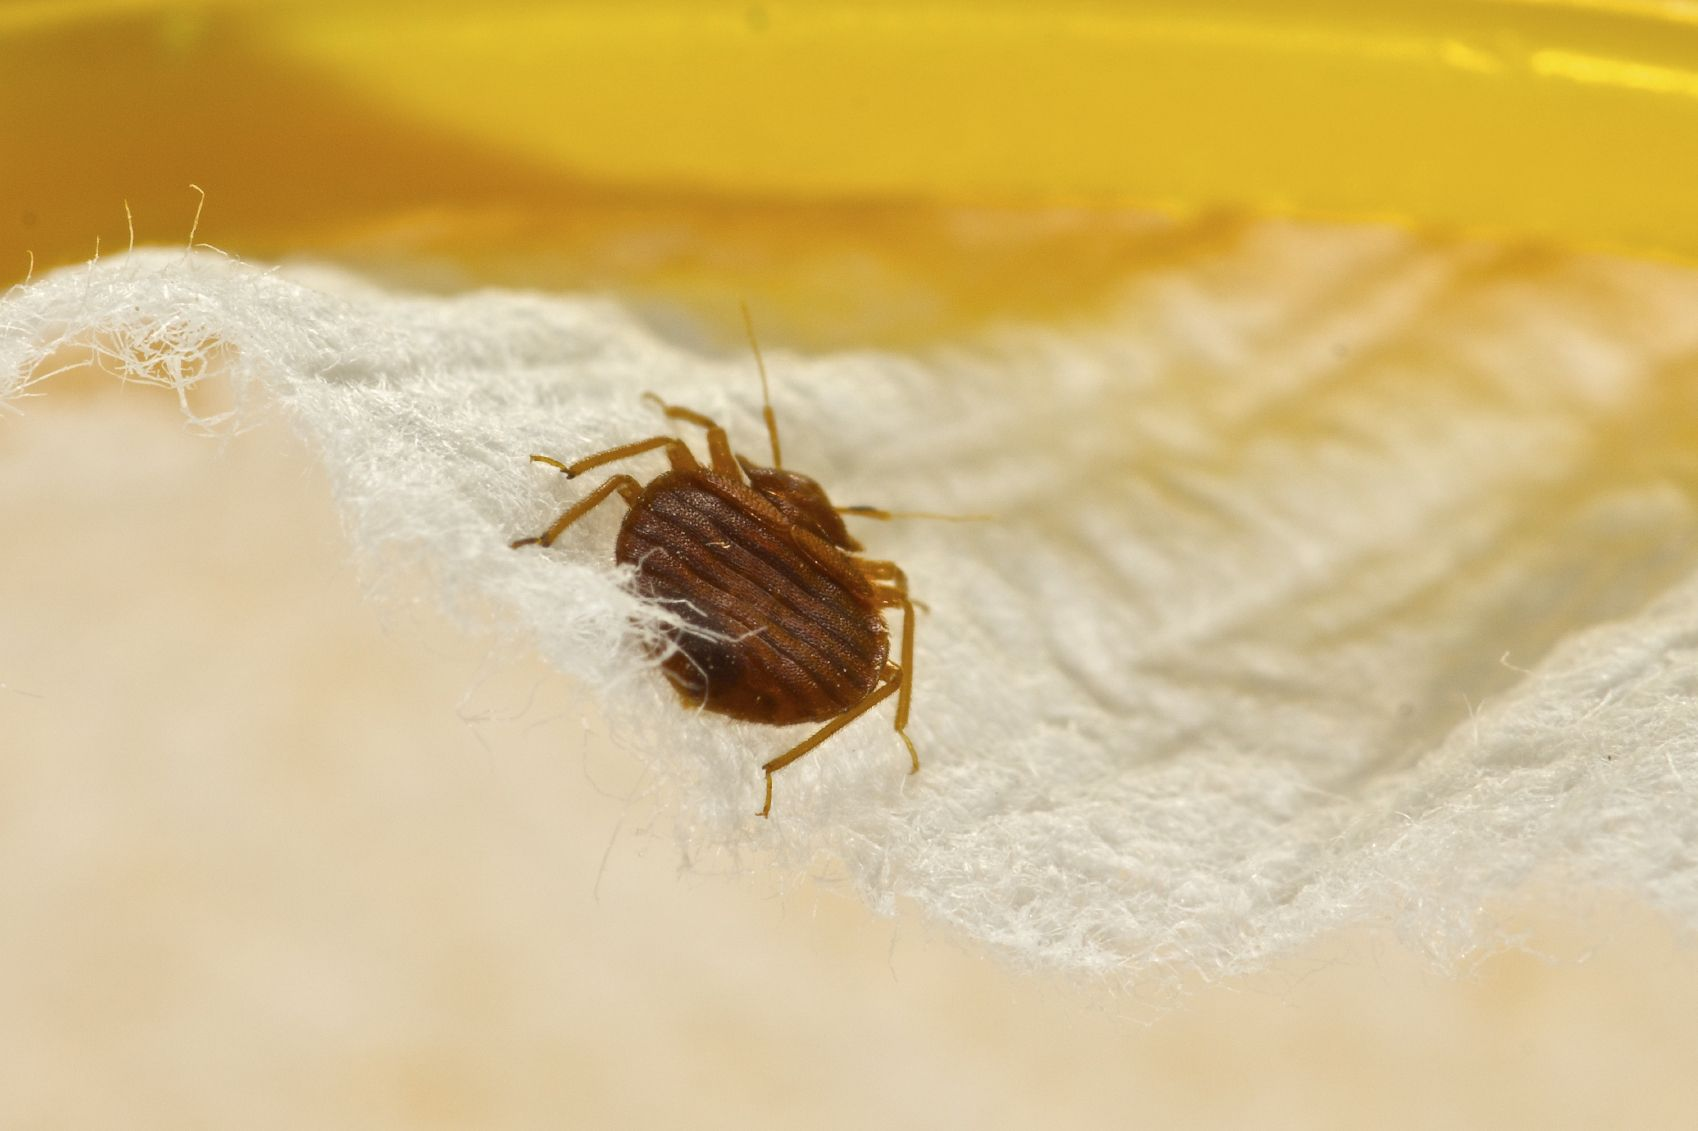 Scientists Have Discovered Bedbugs Have Developed A Defense Against Chemical Sprays Here S How To Kill Them Naturally Without Toxic Insect Cleaning Pinte